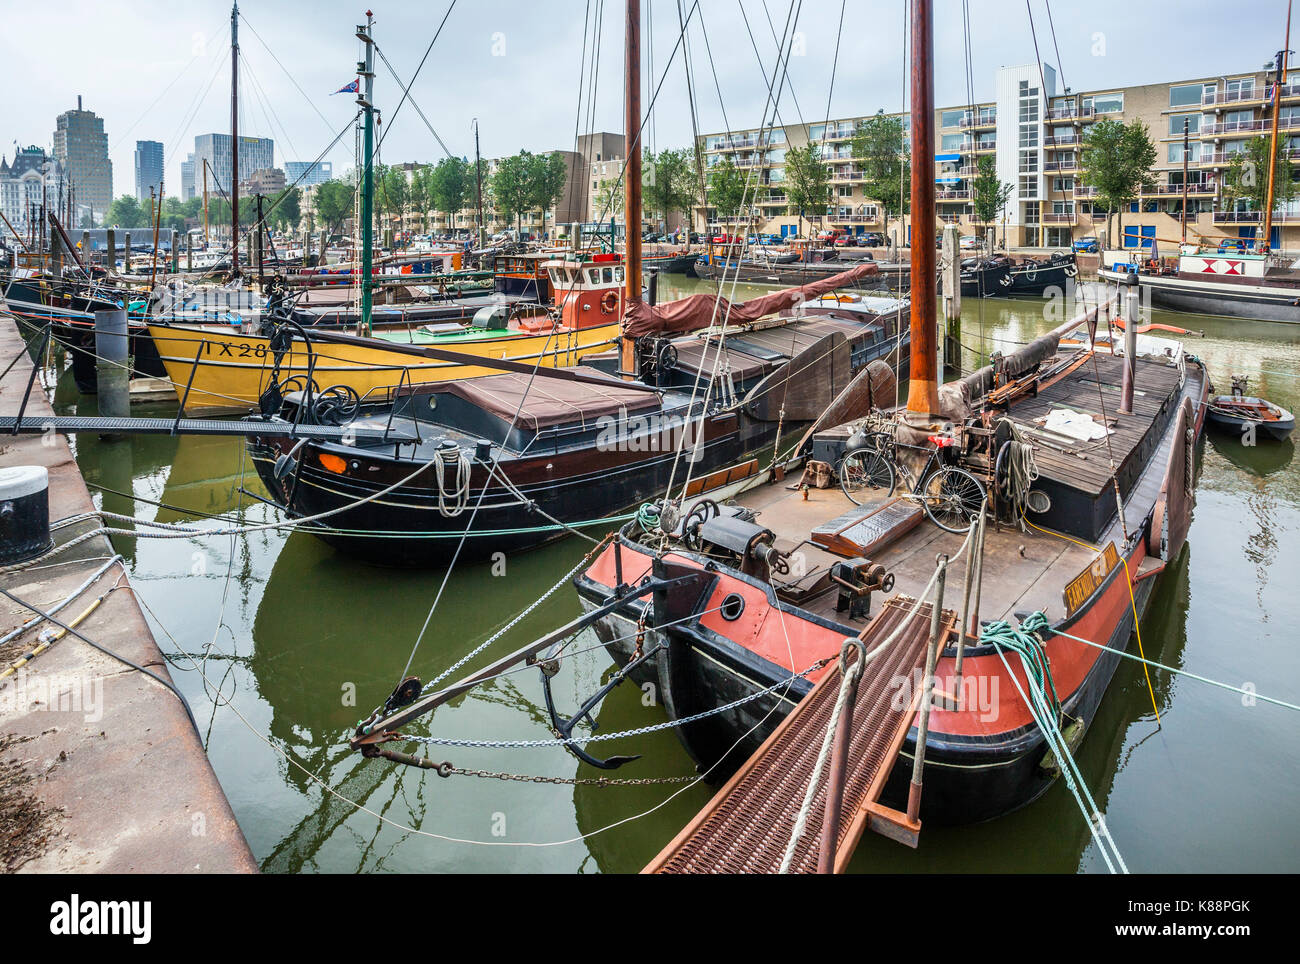 Netherlands, South Holland, Rotterdam, Maritime District, Haringvliet, part of Rotterdams old harbour that was once - Stock Image